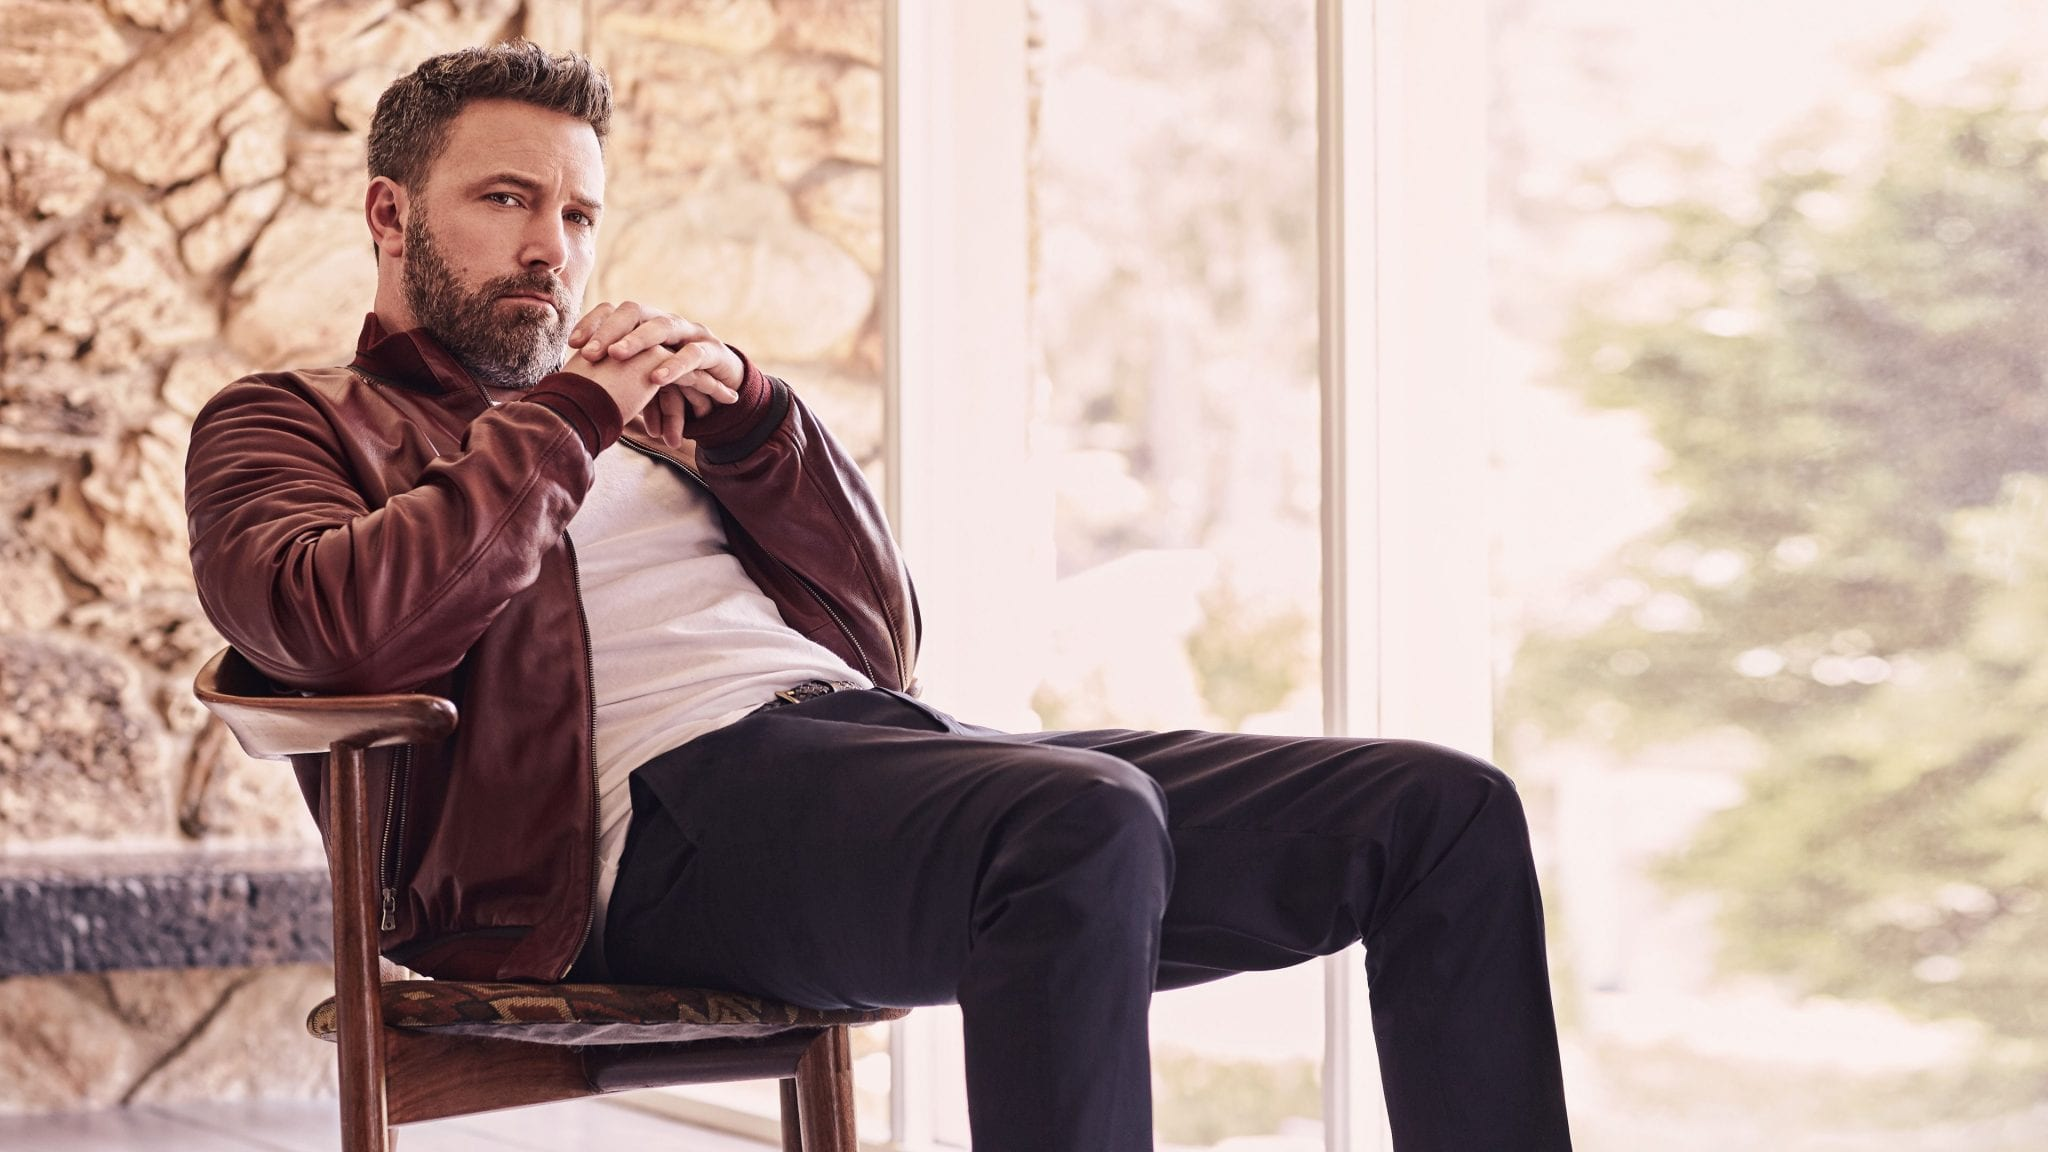 Who is Ben Affleck dating?